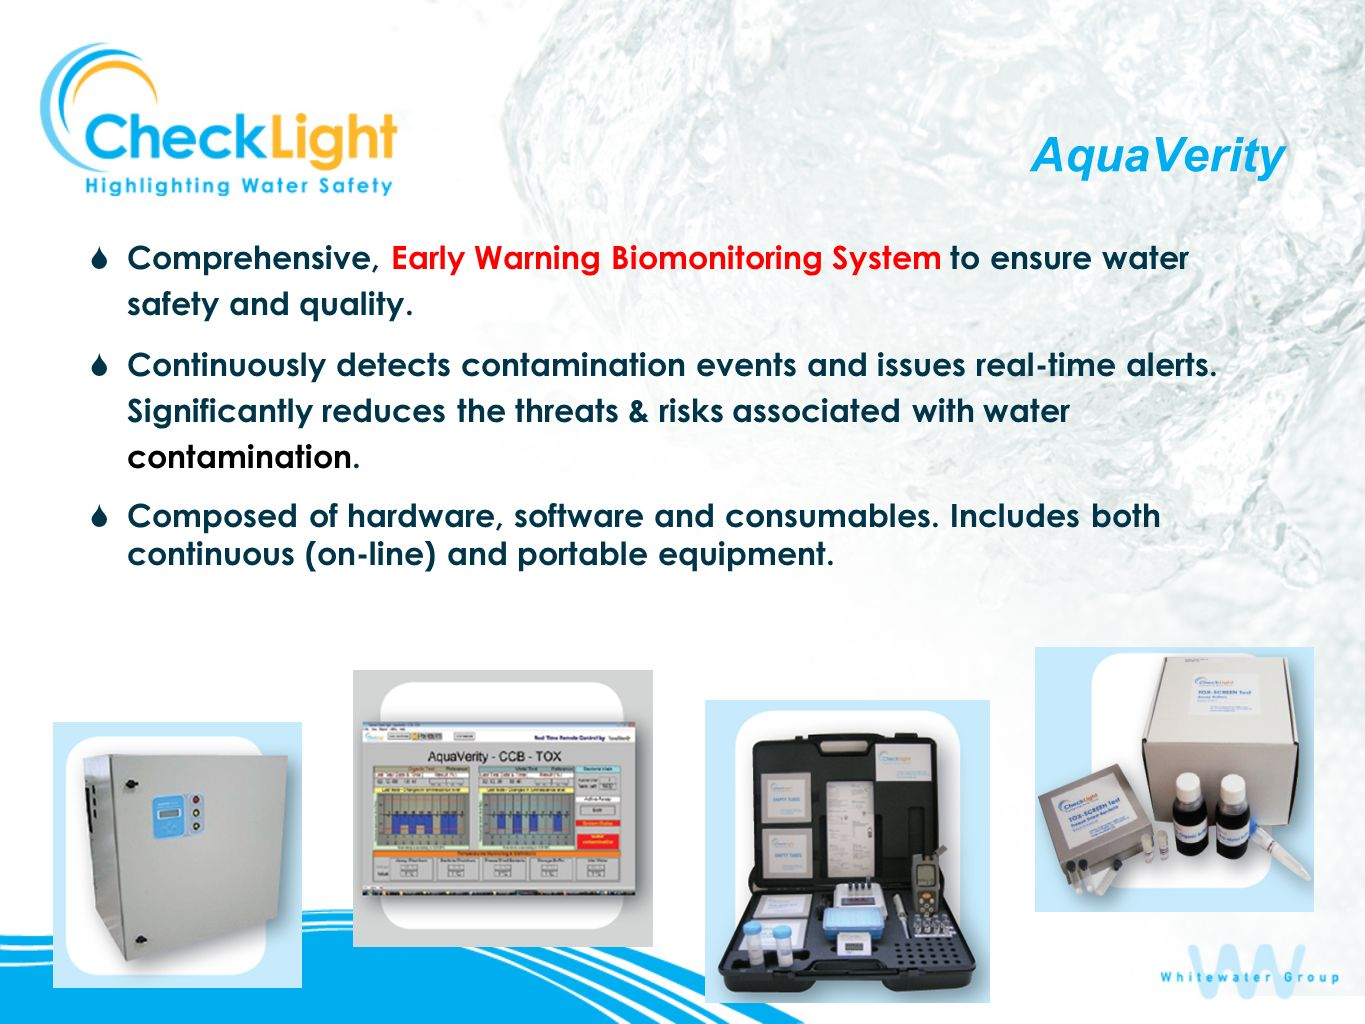 AquaVerity Comprehensive, Early Warning Biomonitoring System to ensure water safety and quality.